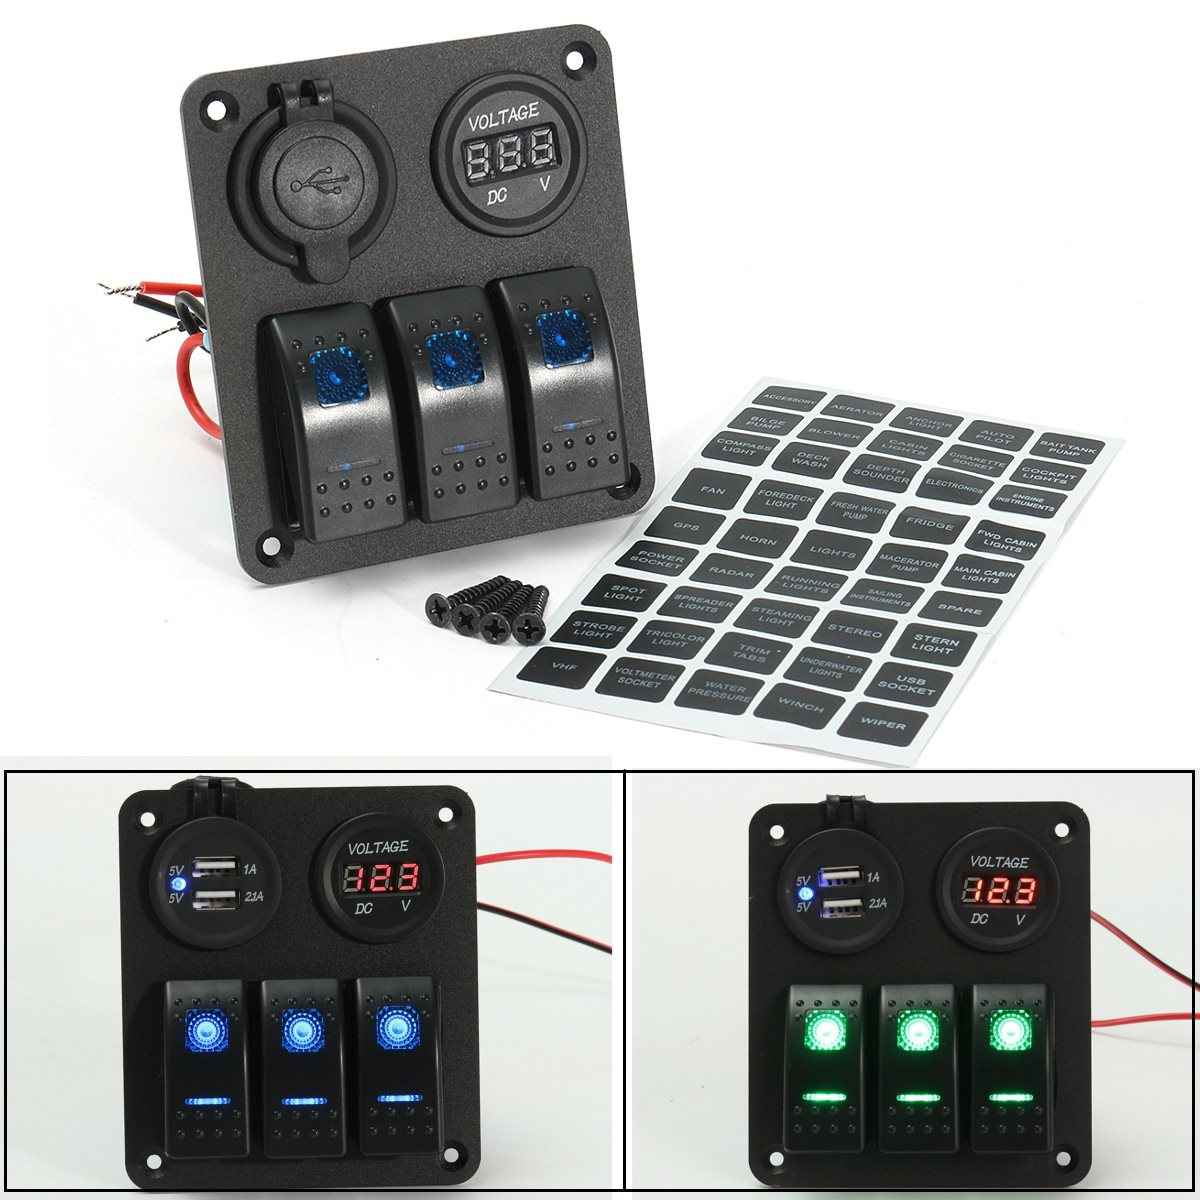 LED Rocker Switch Panel Dual USB Charger Power Socket Voltmeter Marine Boat Rv Aluminum 12V 20A DC/24V 10A DC недорого